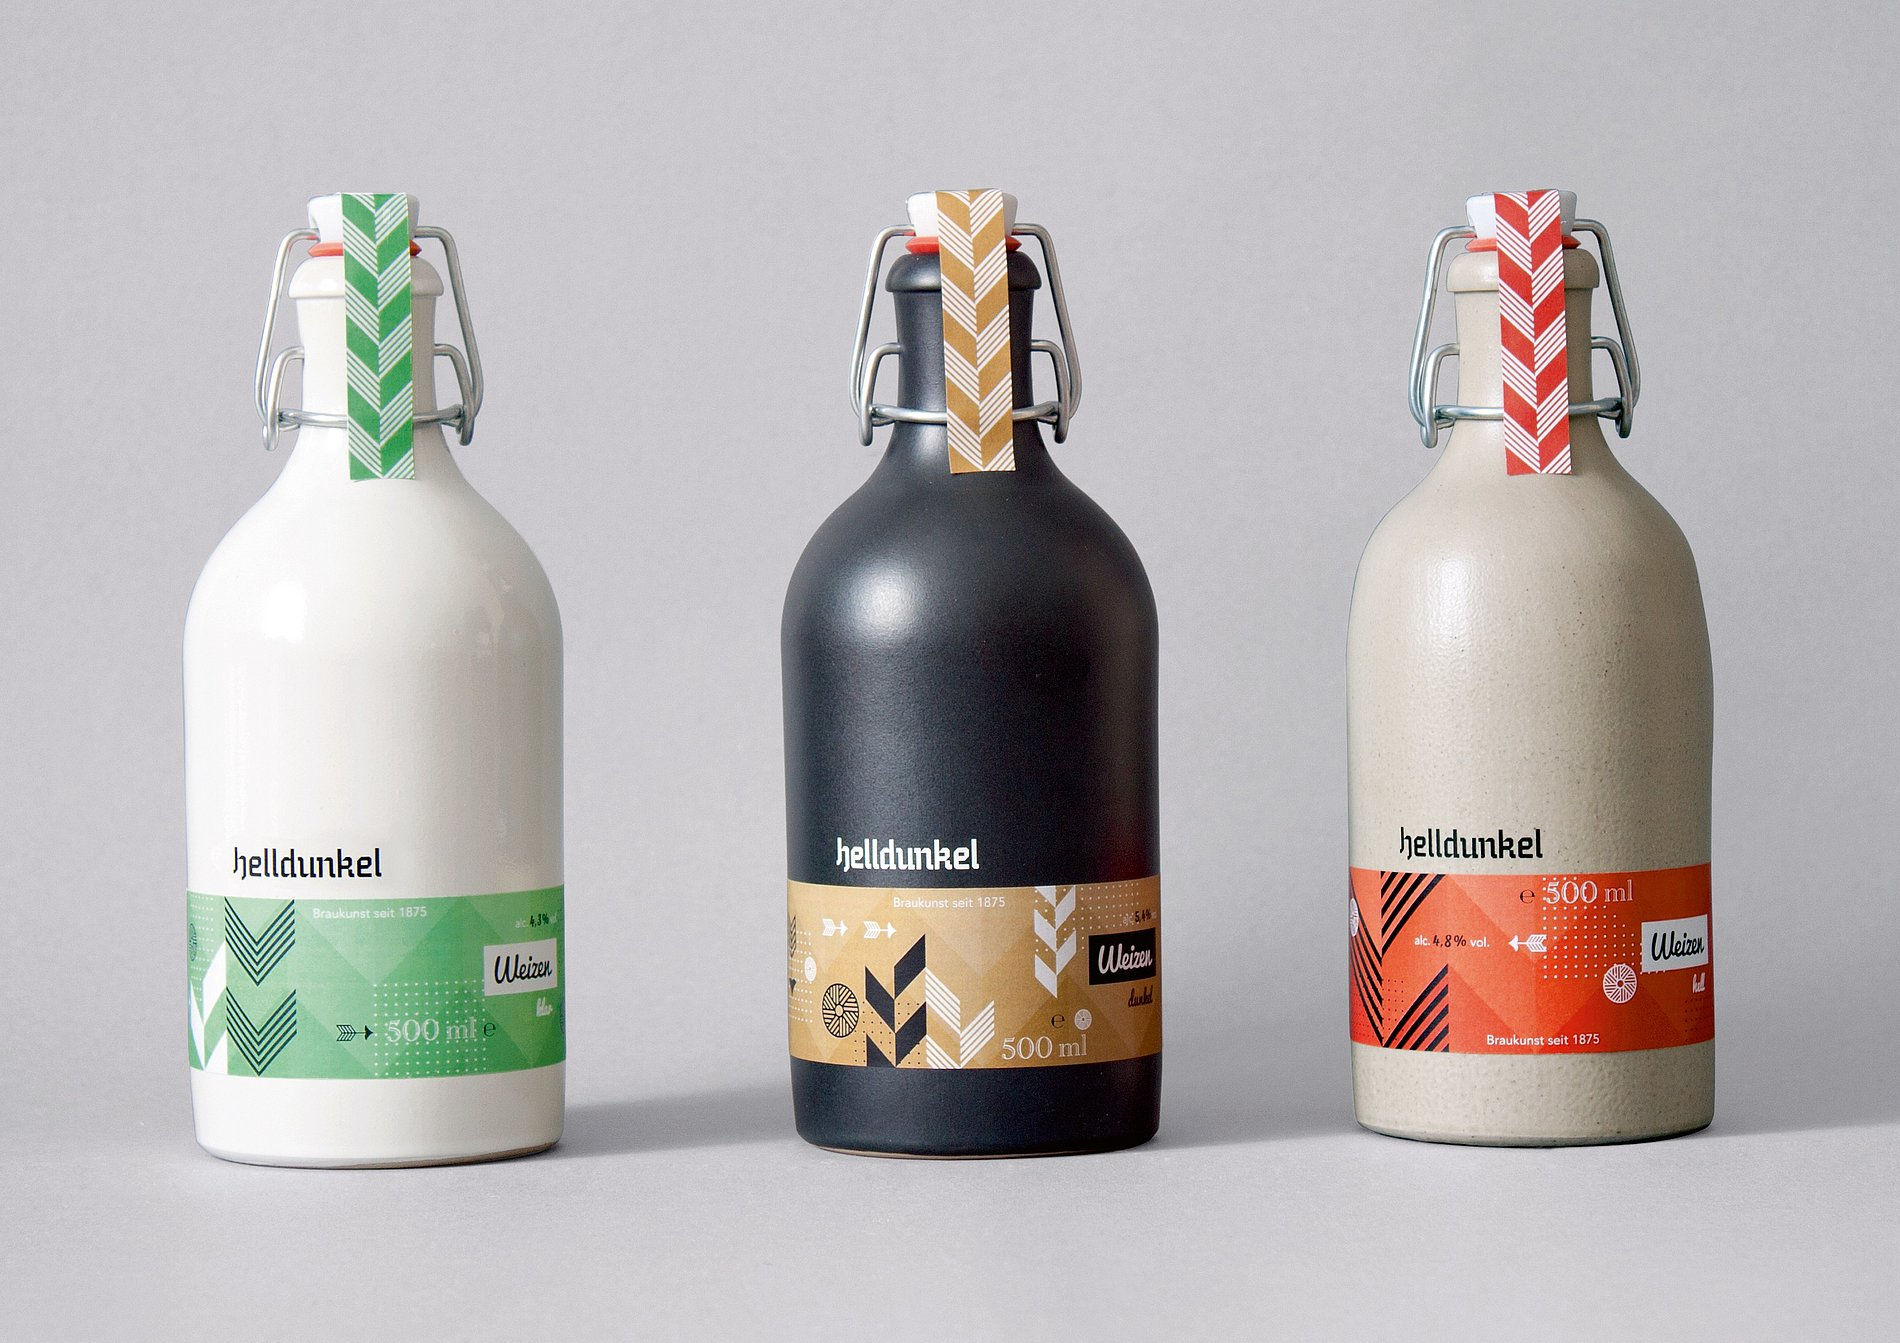 """helldunkel"" Bakery and Brewery 